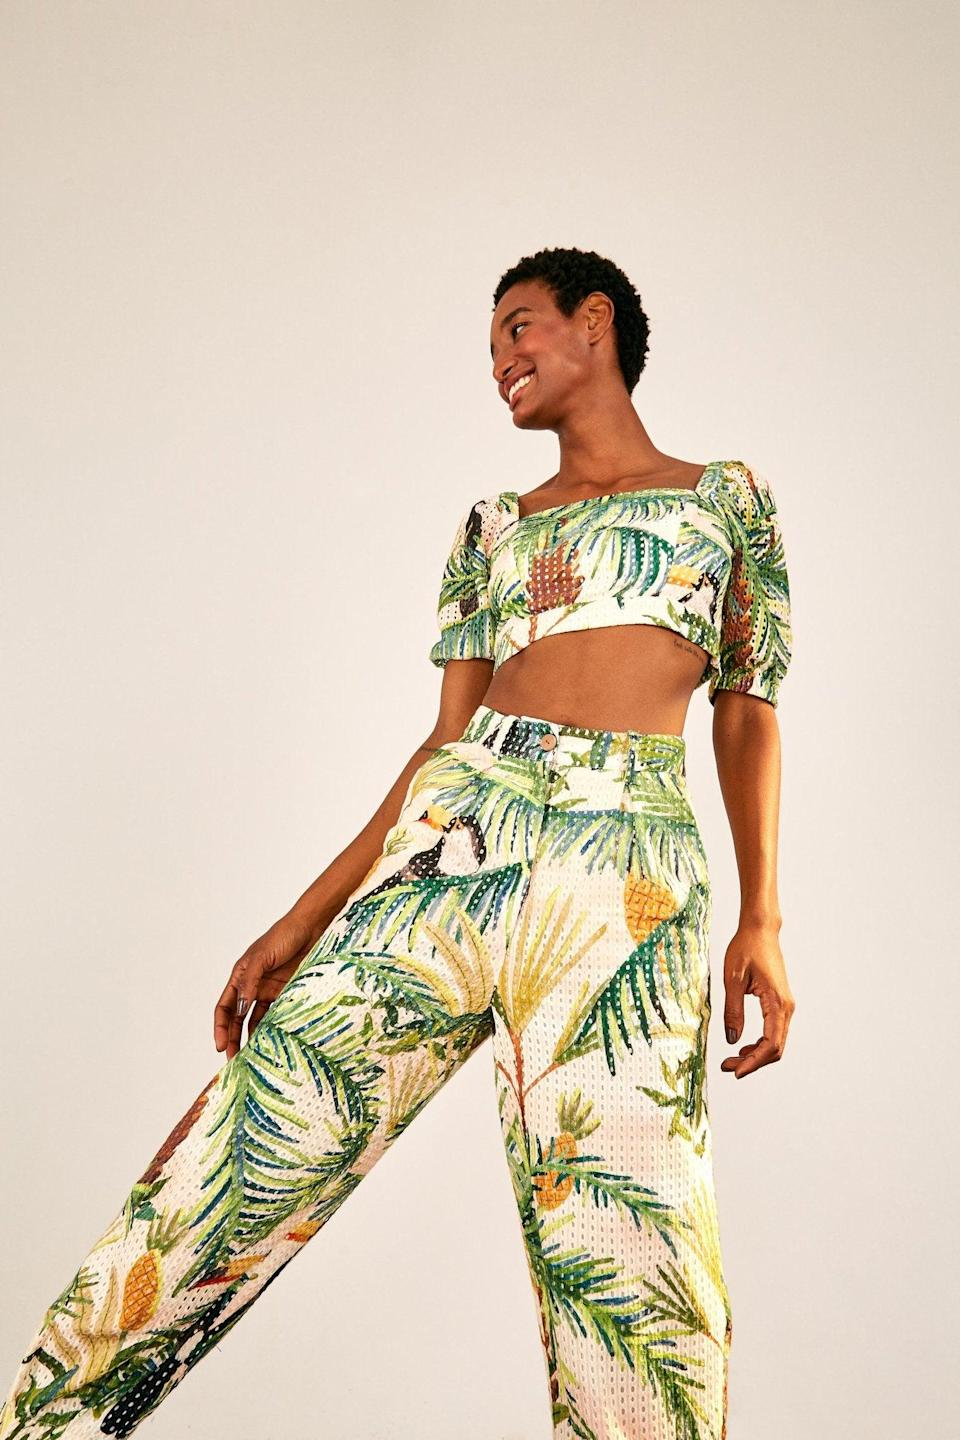 """<br><br><strong>Farm Rio</strong> Toucan Paradise Eyelet Pants, $, available at <a href=""""https://go.skimresources.com/?id=30283X879131&url=https%3A%2F%2Fwww.farmrio.com%2Fcollections%2Fsale%2Fproducts%2Ftoucan-paradise-eyelet-pants"""" rel=""""nofollow noopener"""" target=""""_blank"""" data-ylk=""""slk:Farm Rio"""" class=""""link rapid-noclick-resp"""">Farm Rio</a>"""